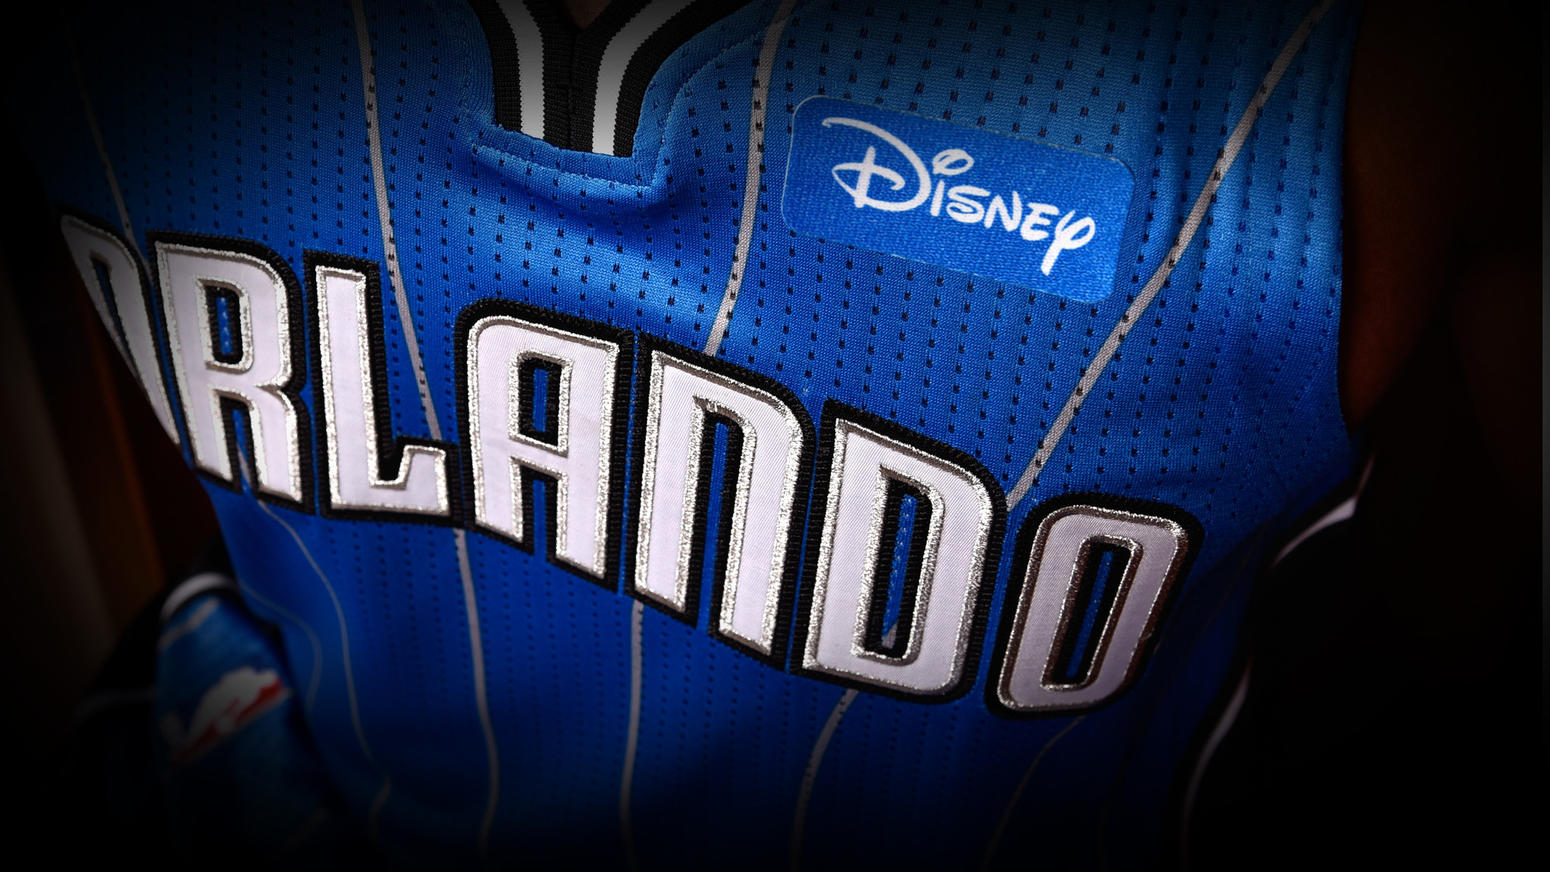 Orlando Magic add Disney logo to jerseys